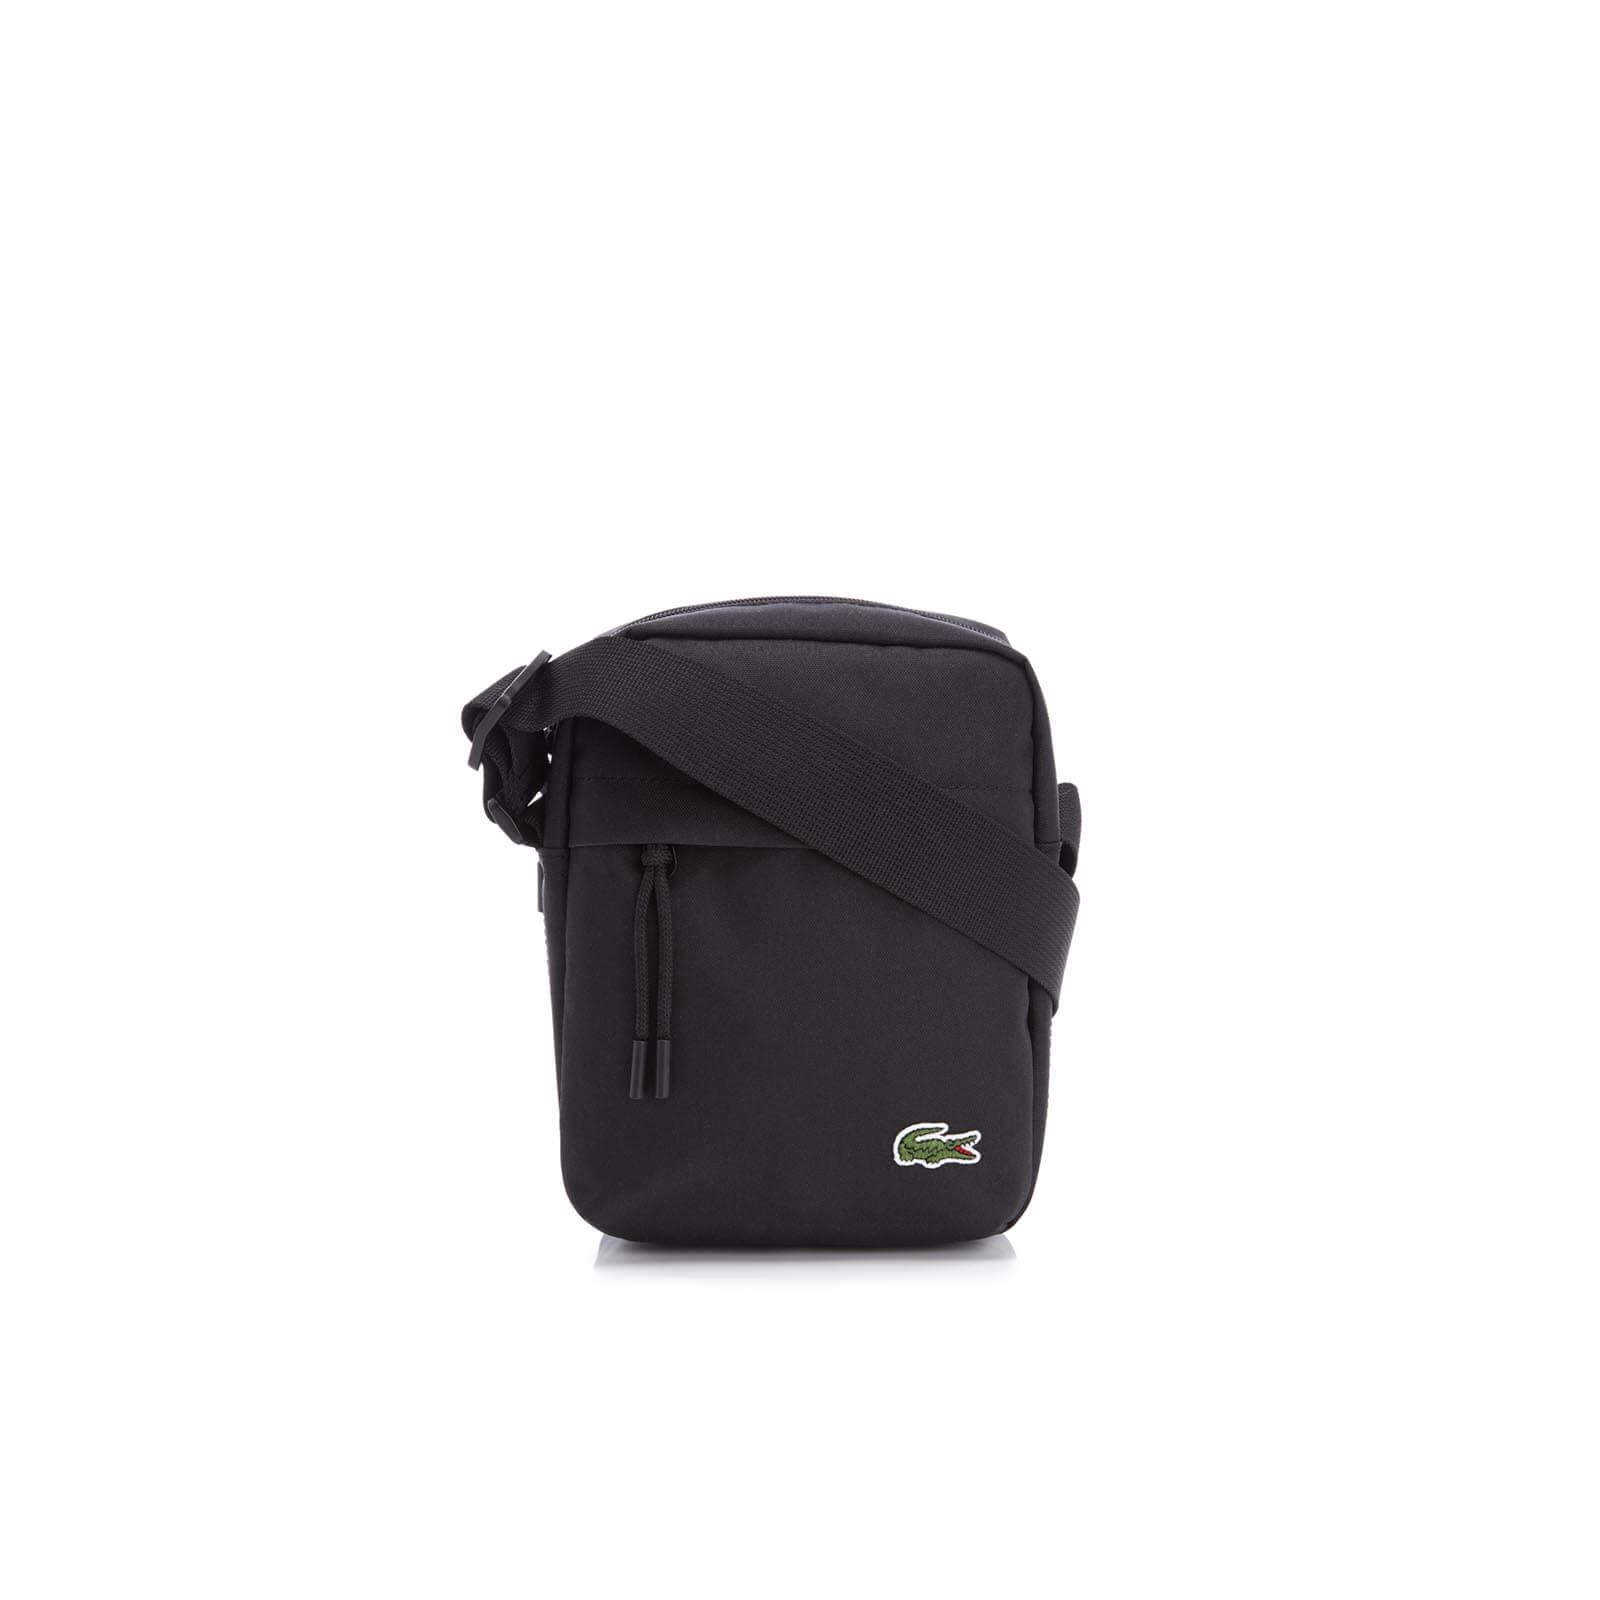 378cbd61 Lacoste Men's Vertical Camera Bag - Black